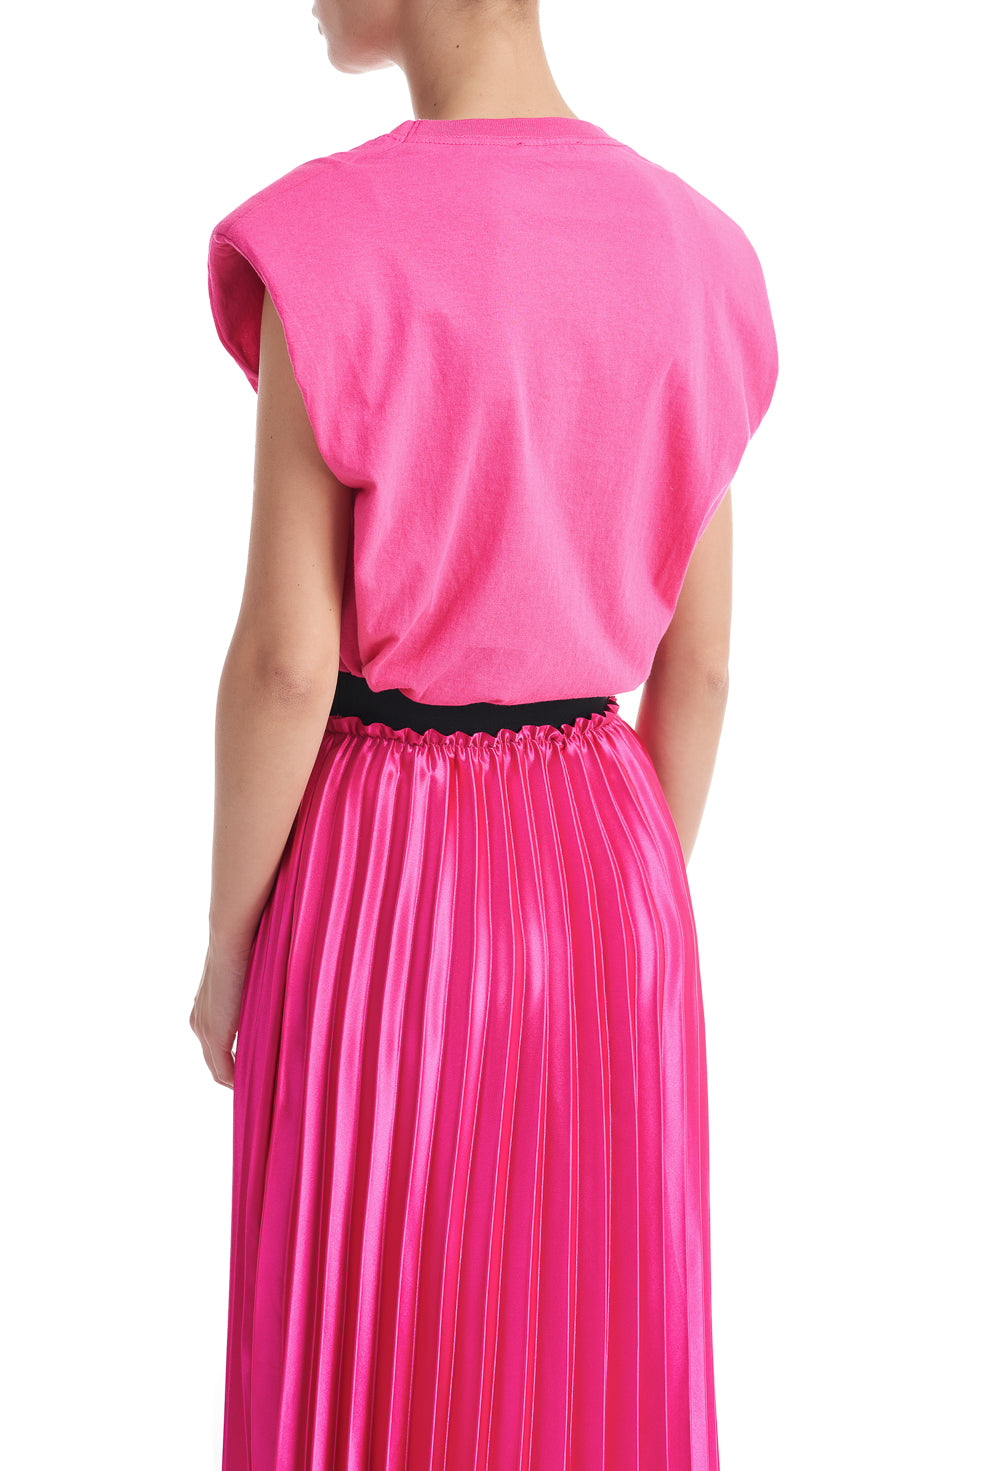 Michelle Pink Sleeveless Shouder Pad Top